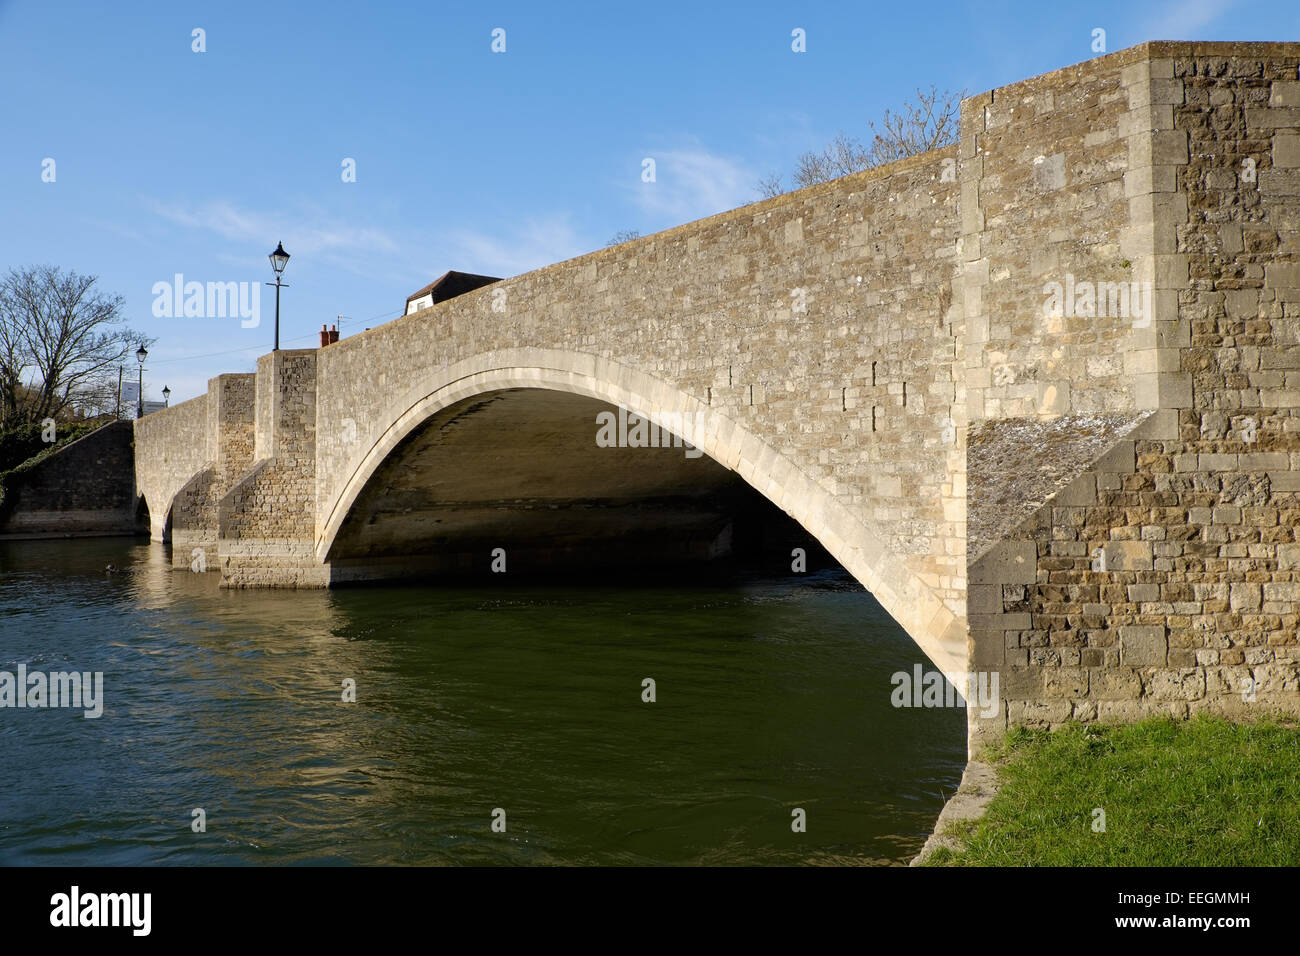 The old stone road bridge over the River Thames, in Abingdon, Oxfordshire. - Stock Image